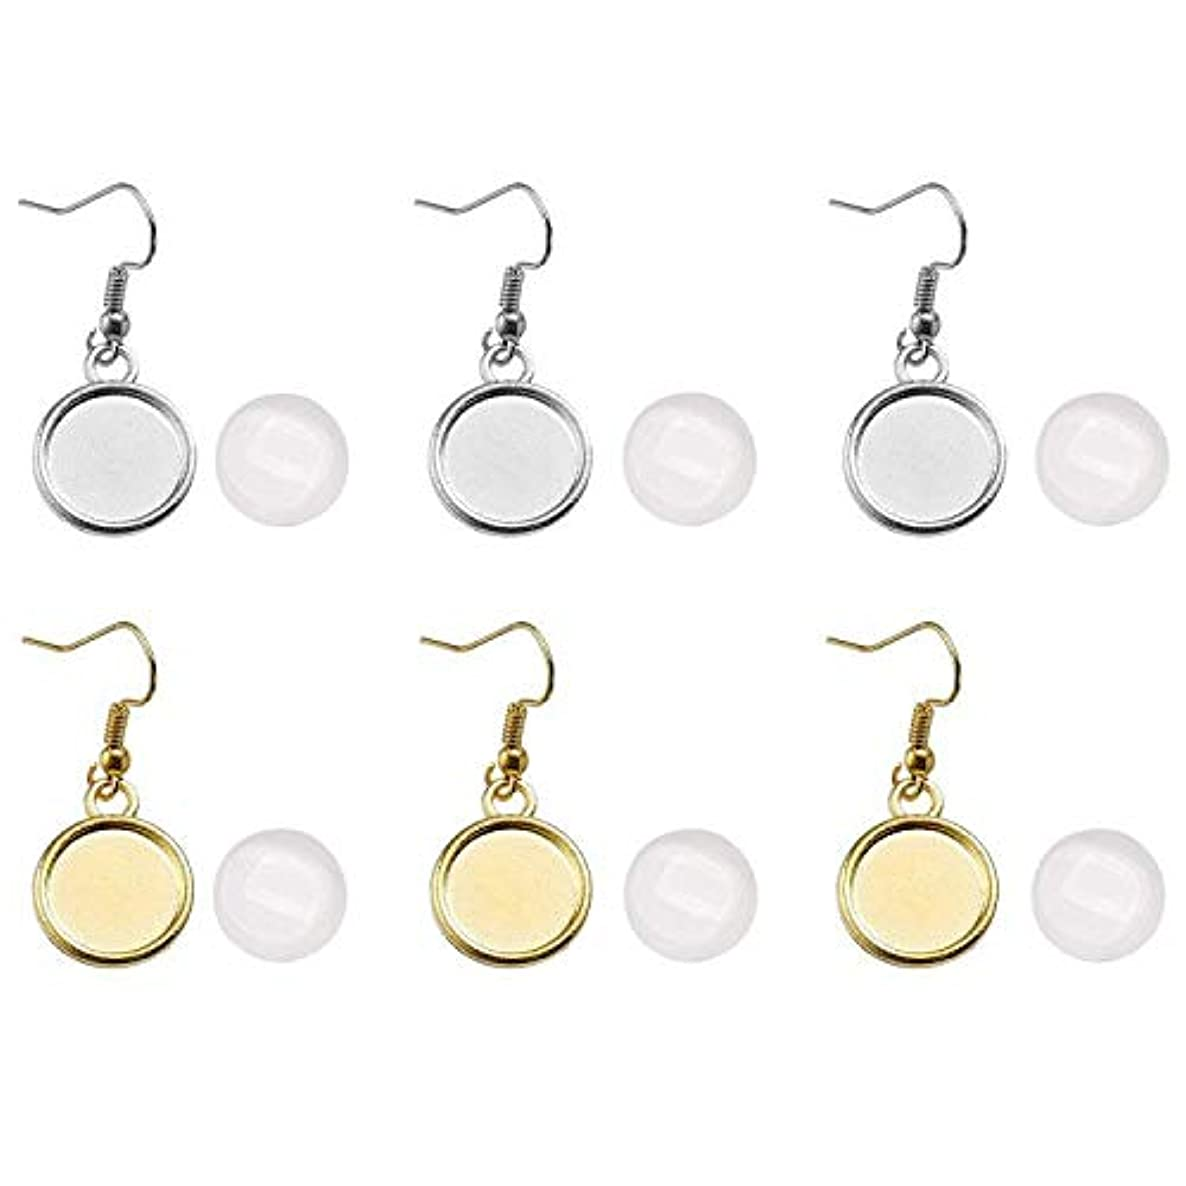 40 Pack Silver and Golden Cabochon Earring Settings with Glass Dome, Blank Cabochon Settings, Silver Tone Lever Back Earring Hooks